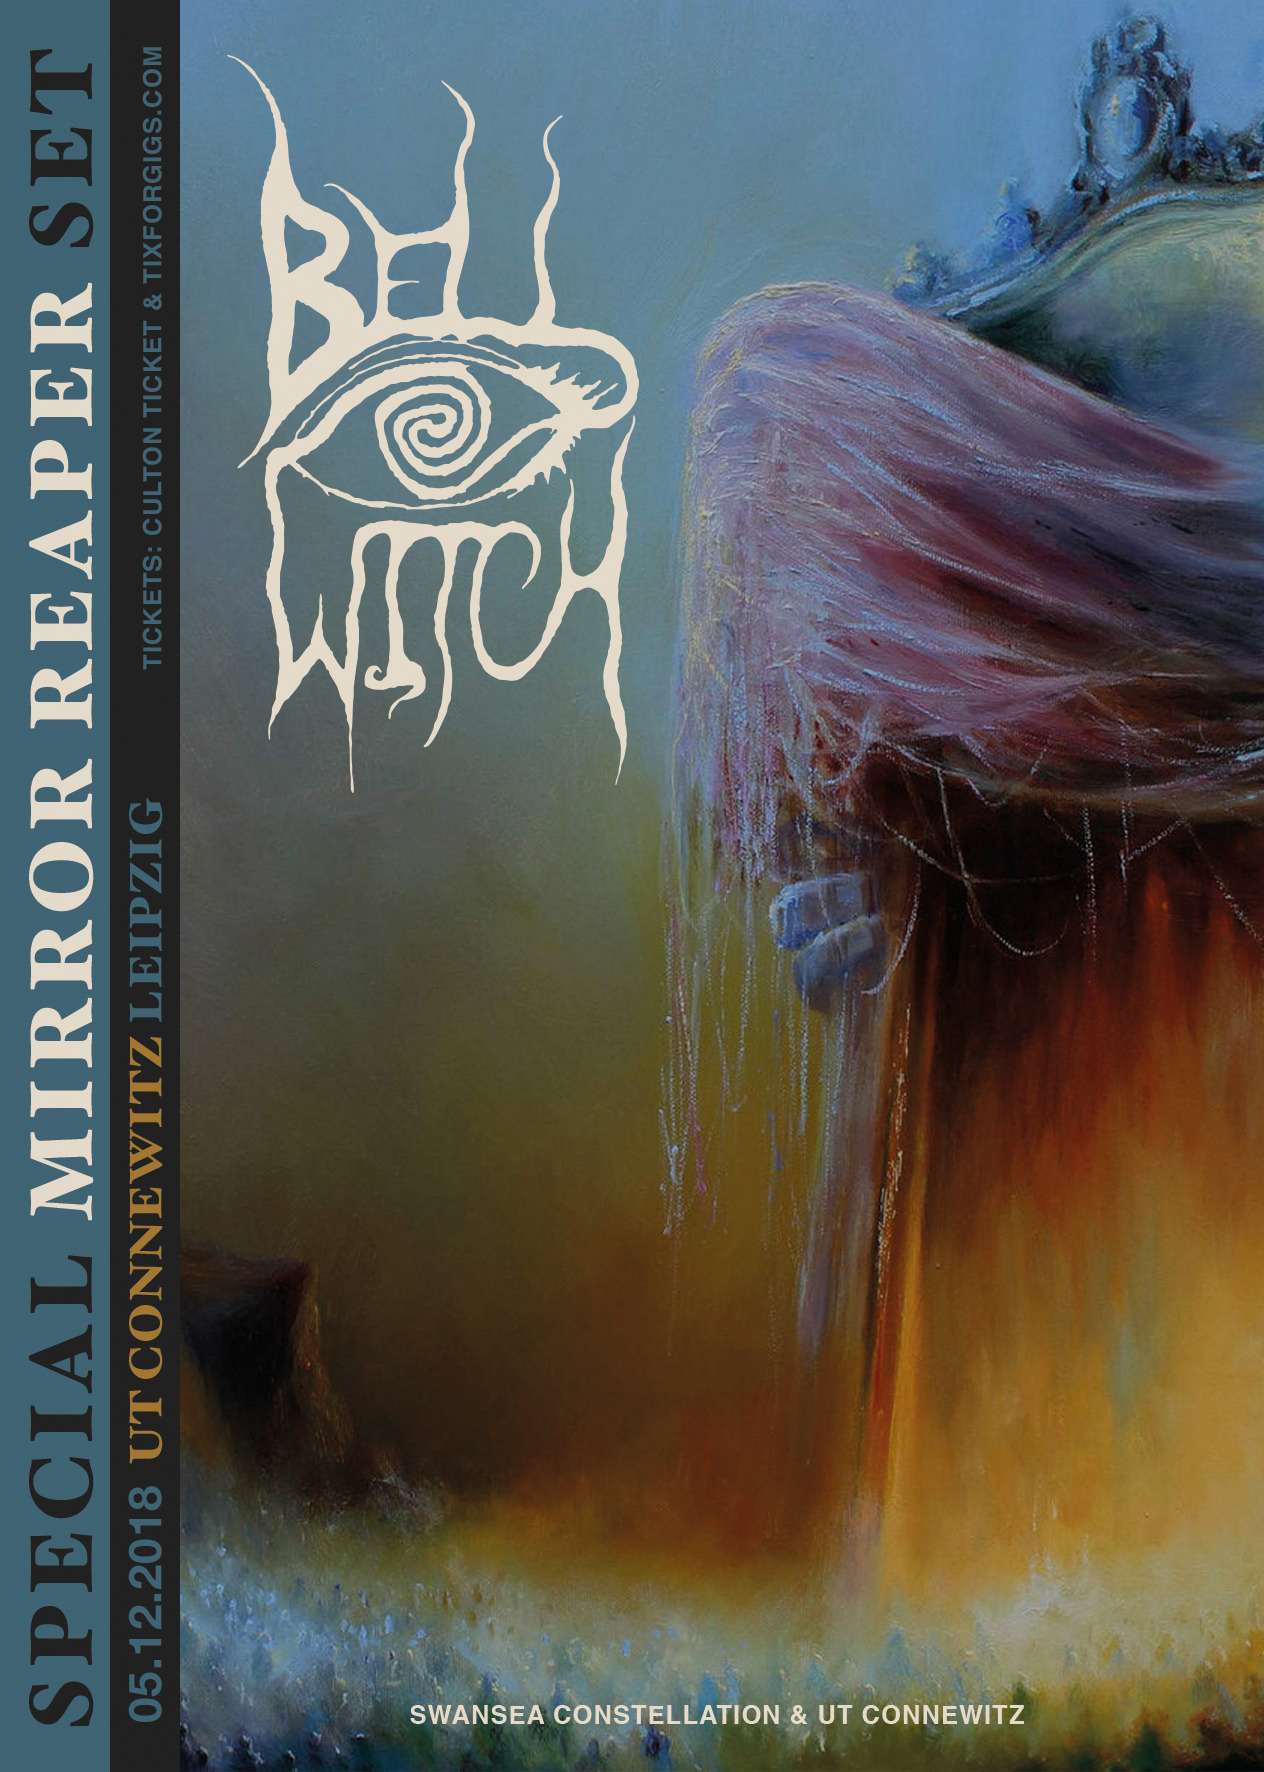 Bell Witch | 05-12-2018